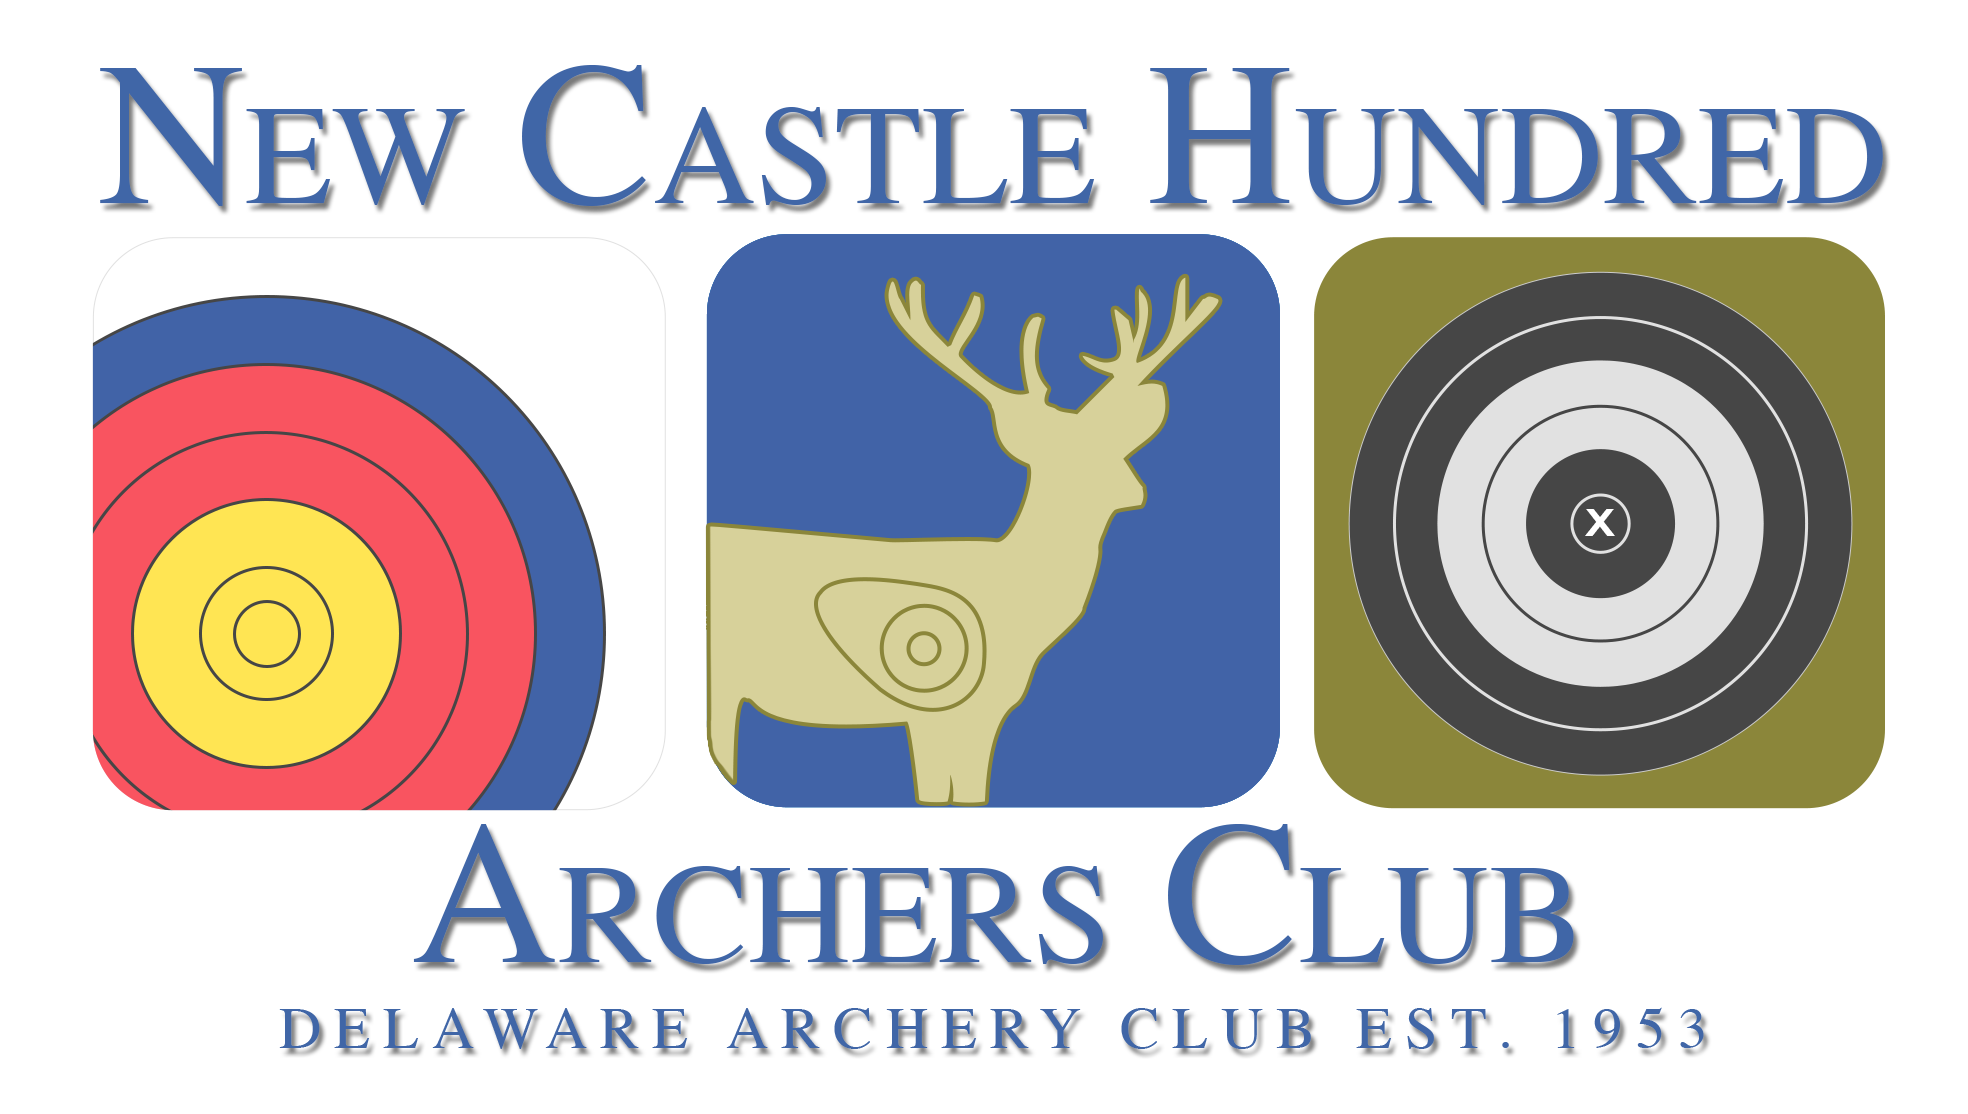 New Castle Hundred Archers